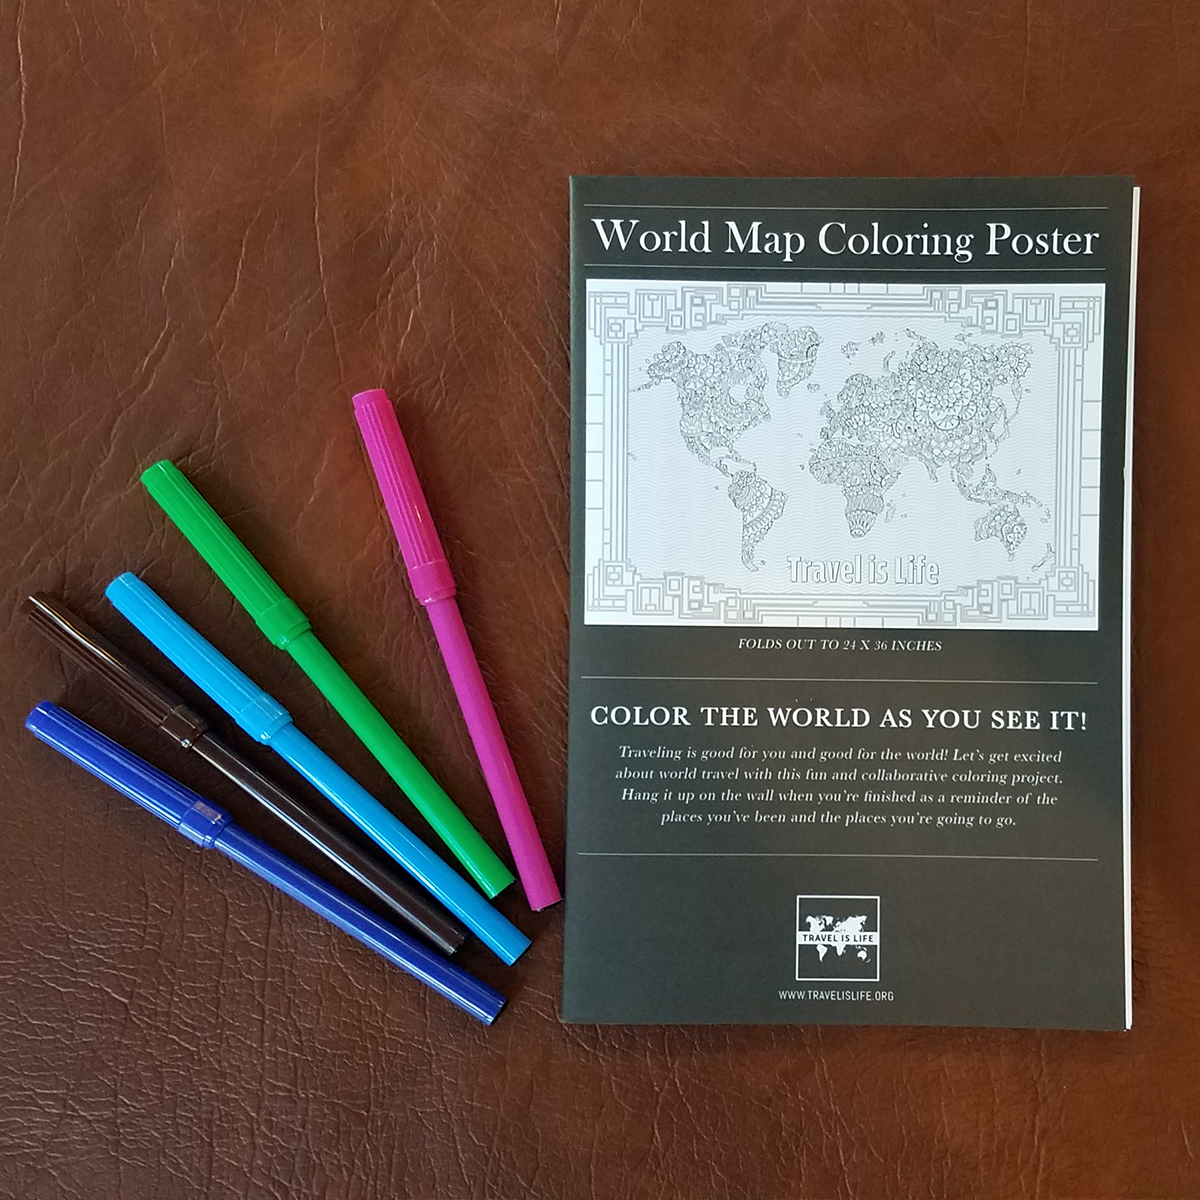 World map coloring poster for kids adults by travel is life sdfsdfsdf publicscrutiny Gallery